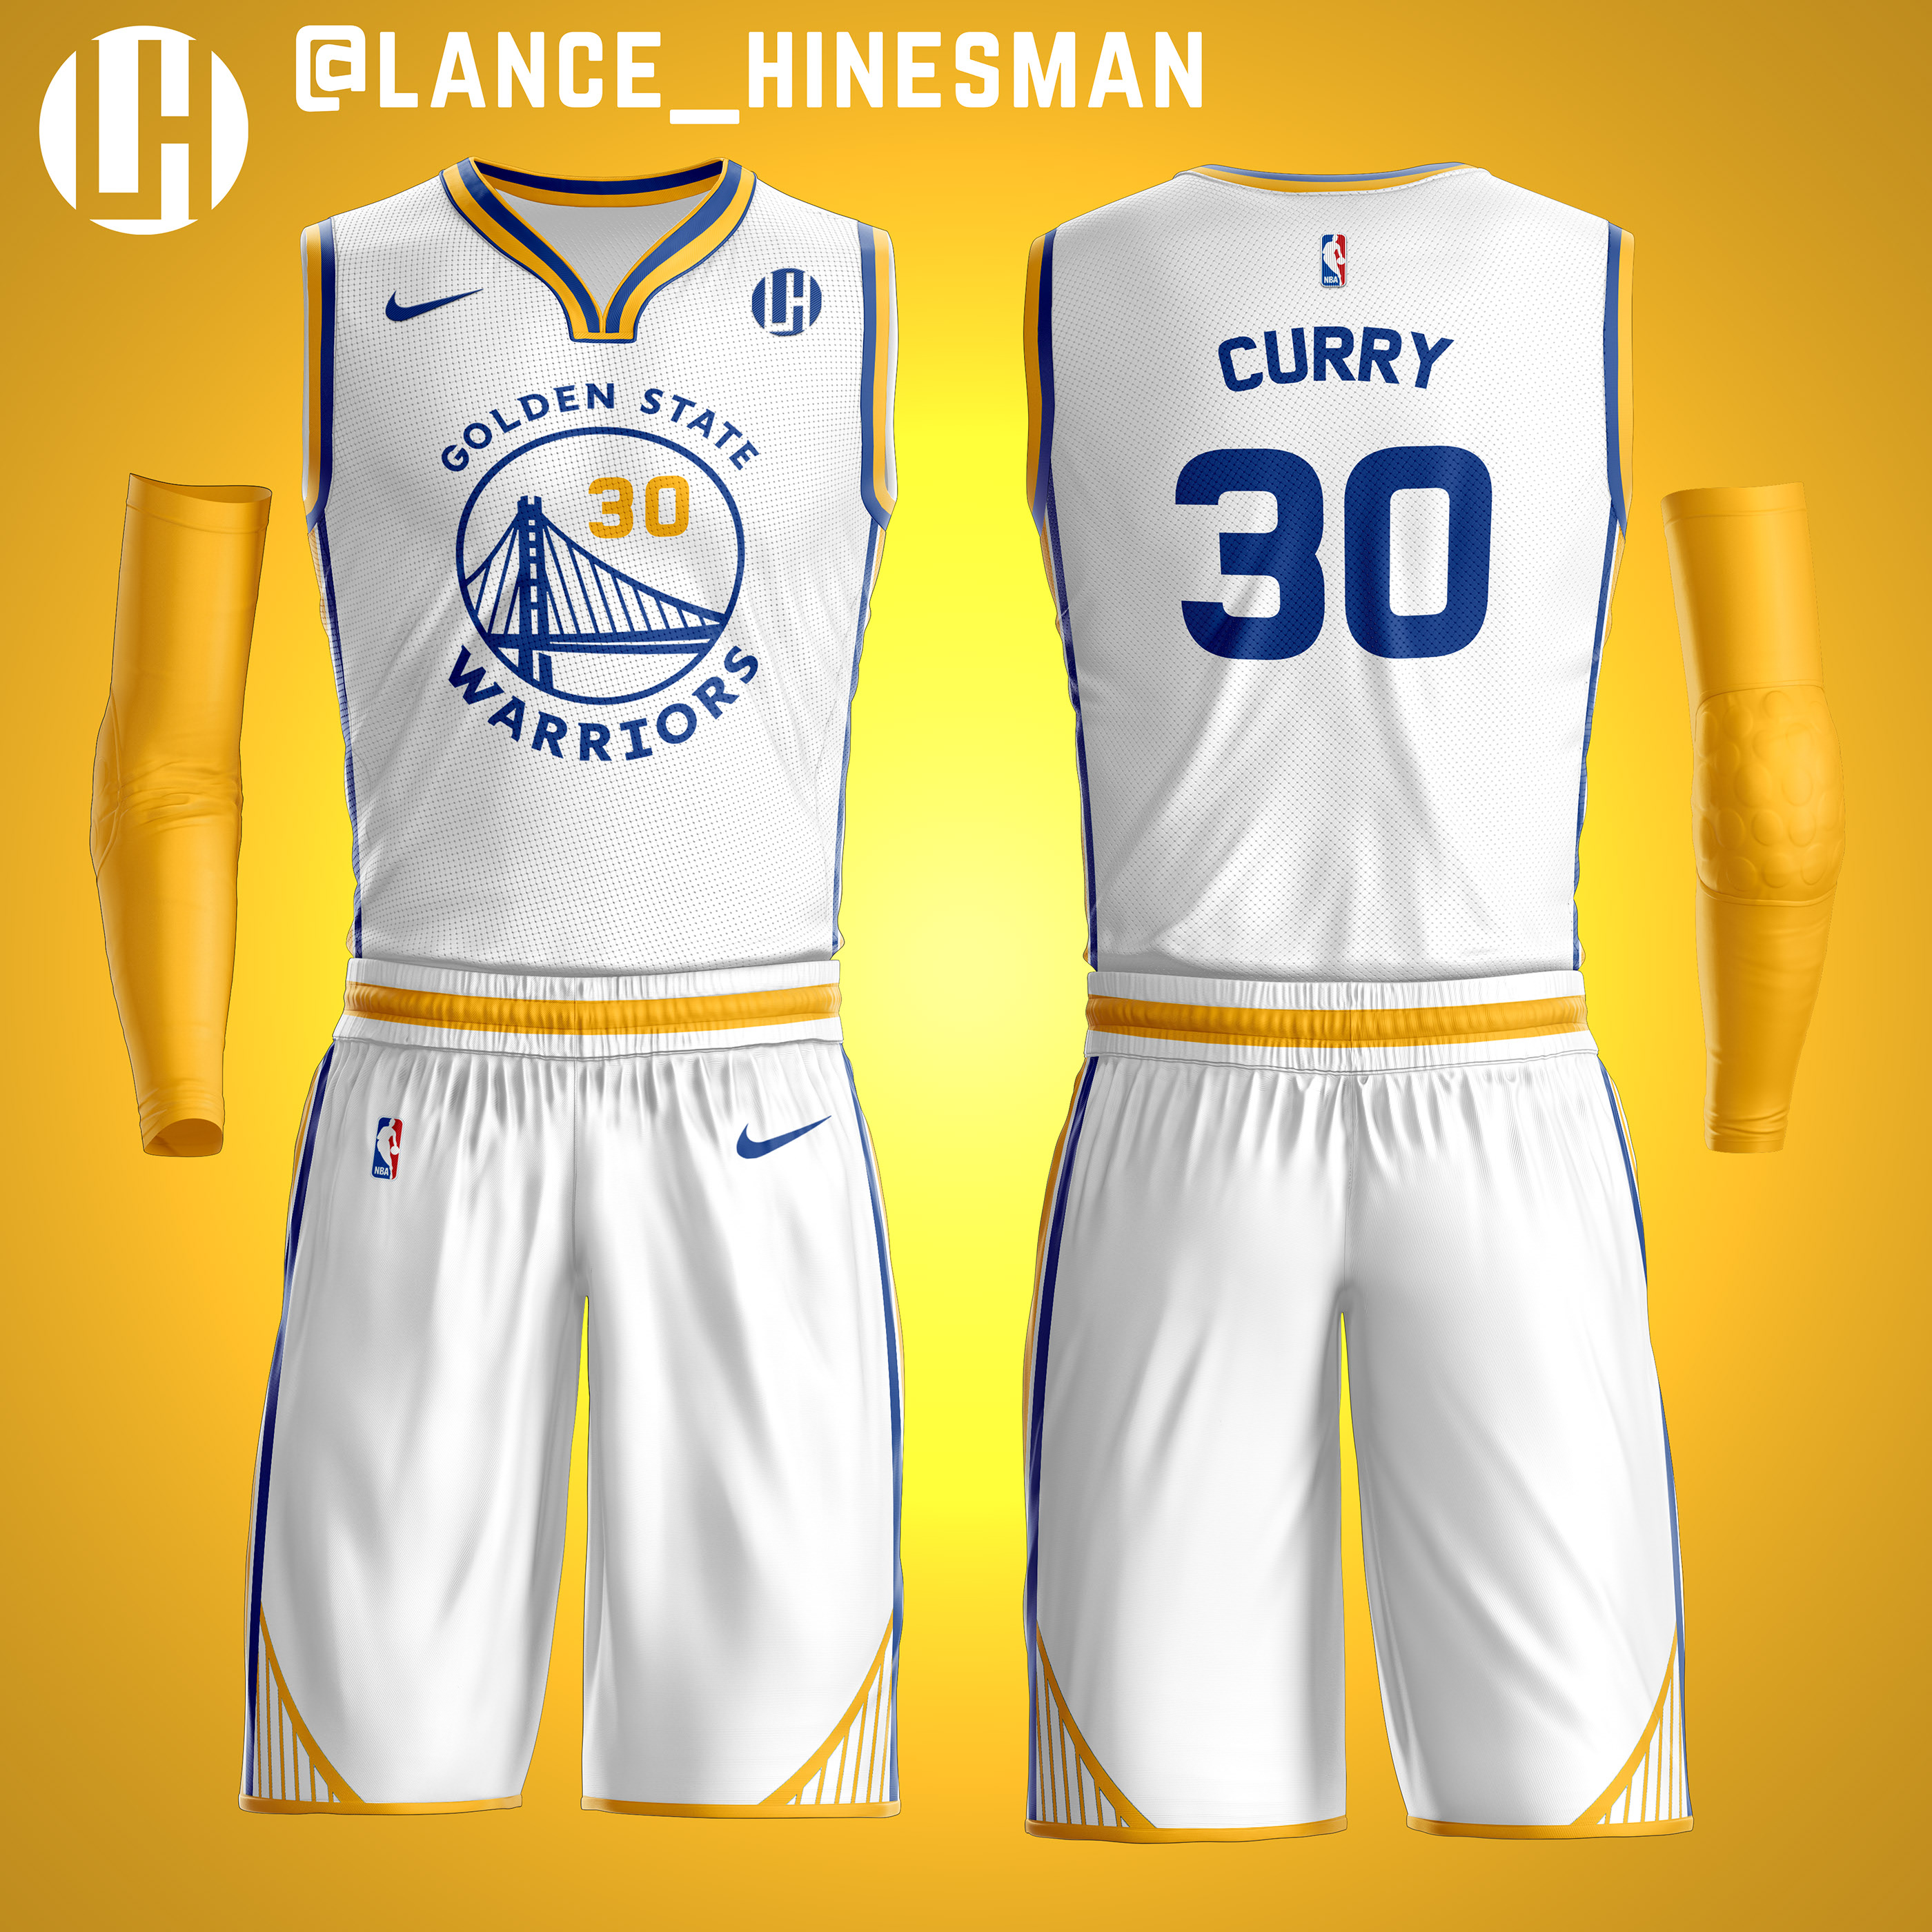 Golden State Warriors Jersey Concepts on Behance